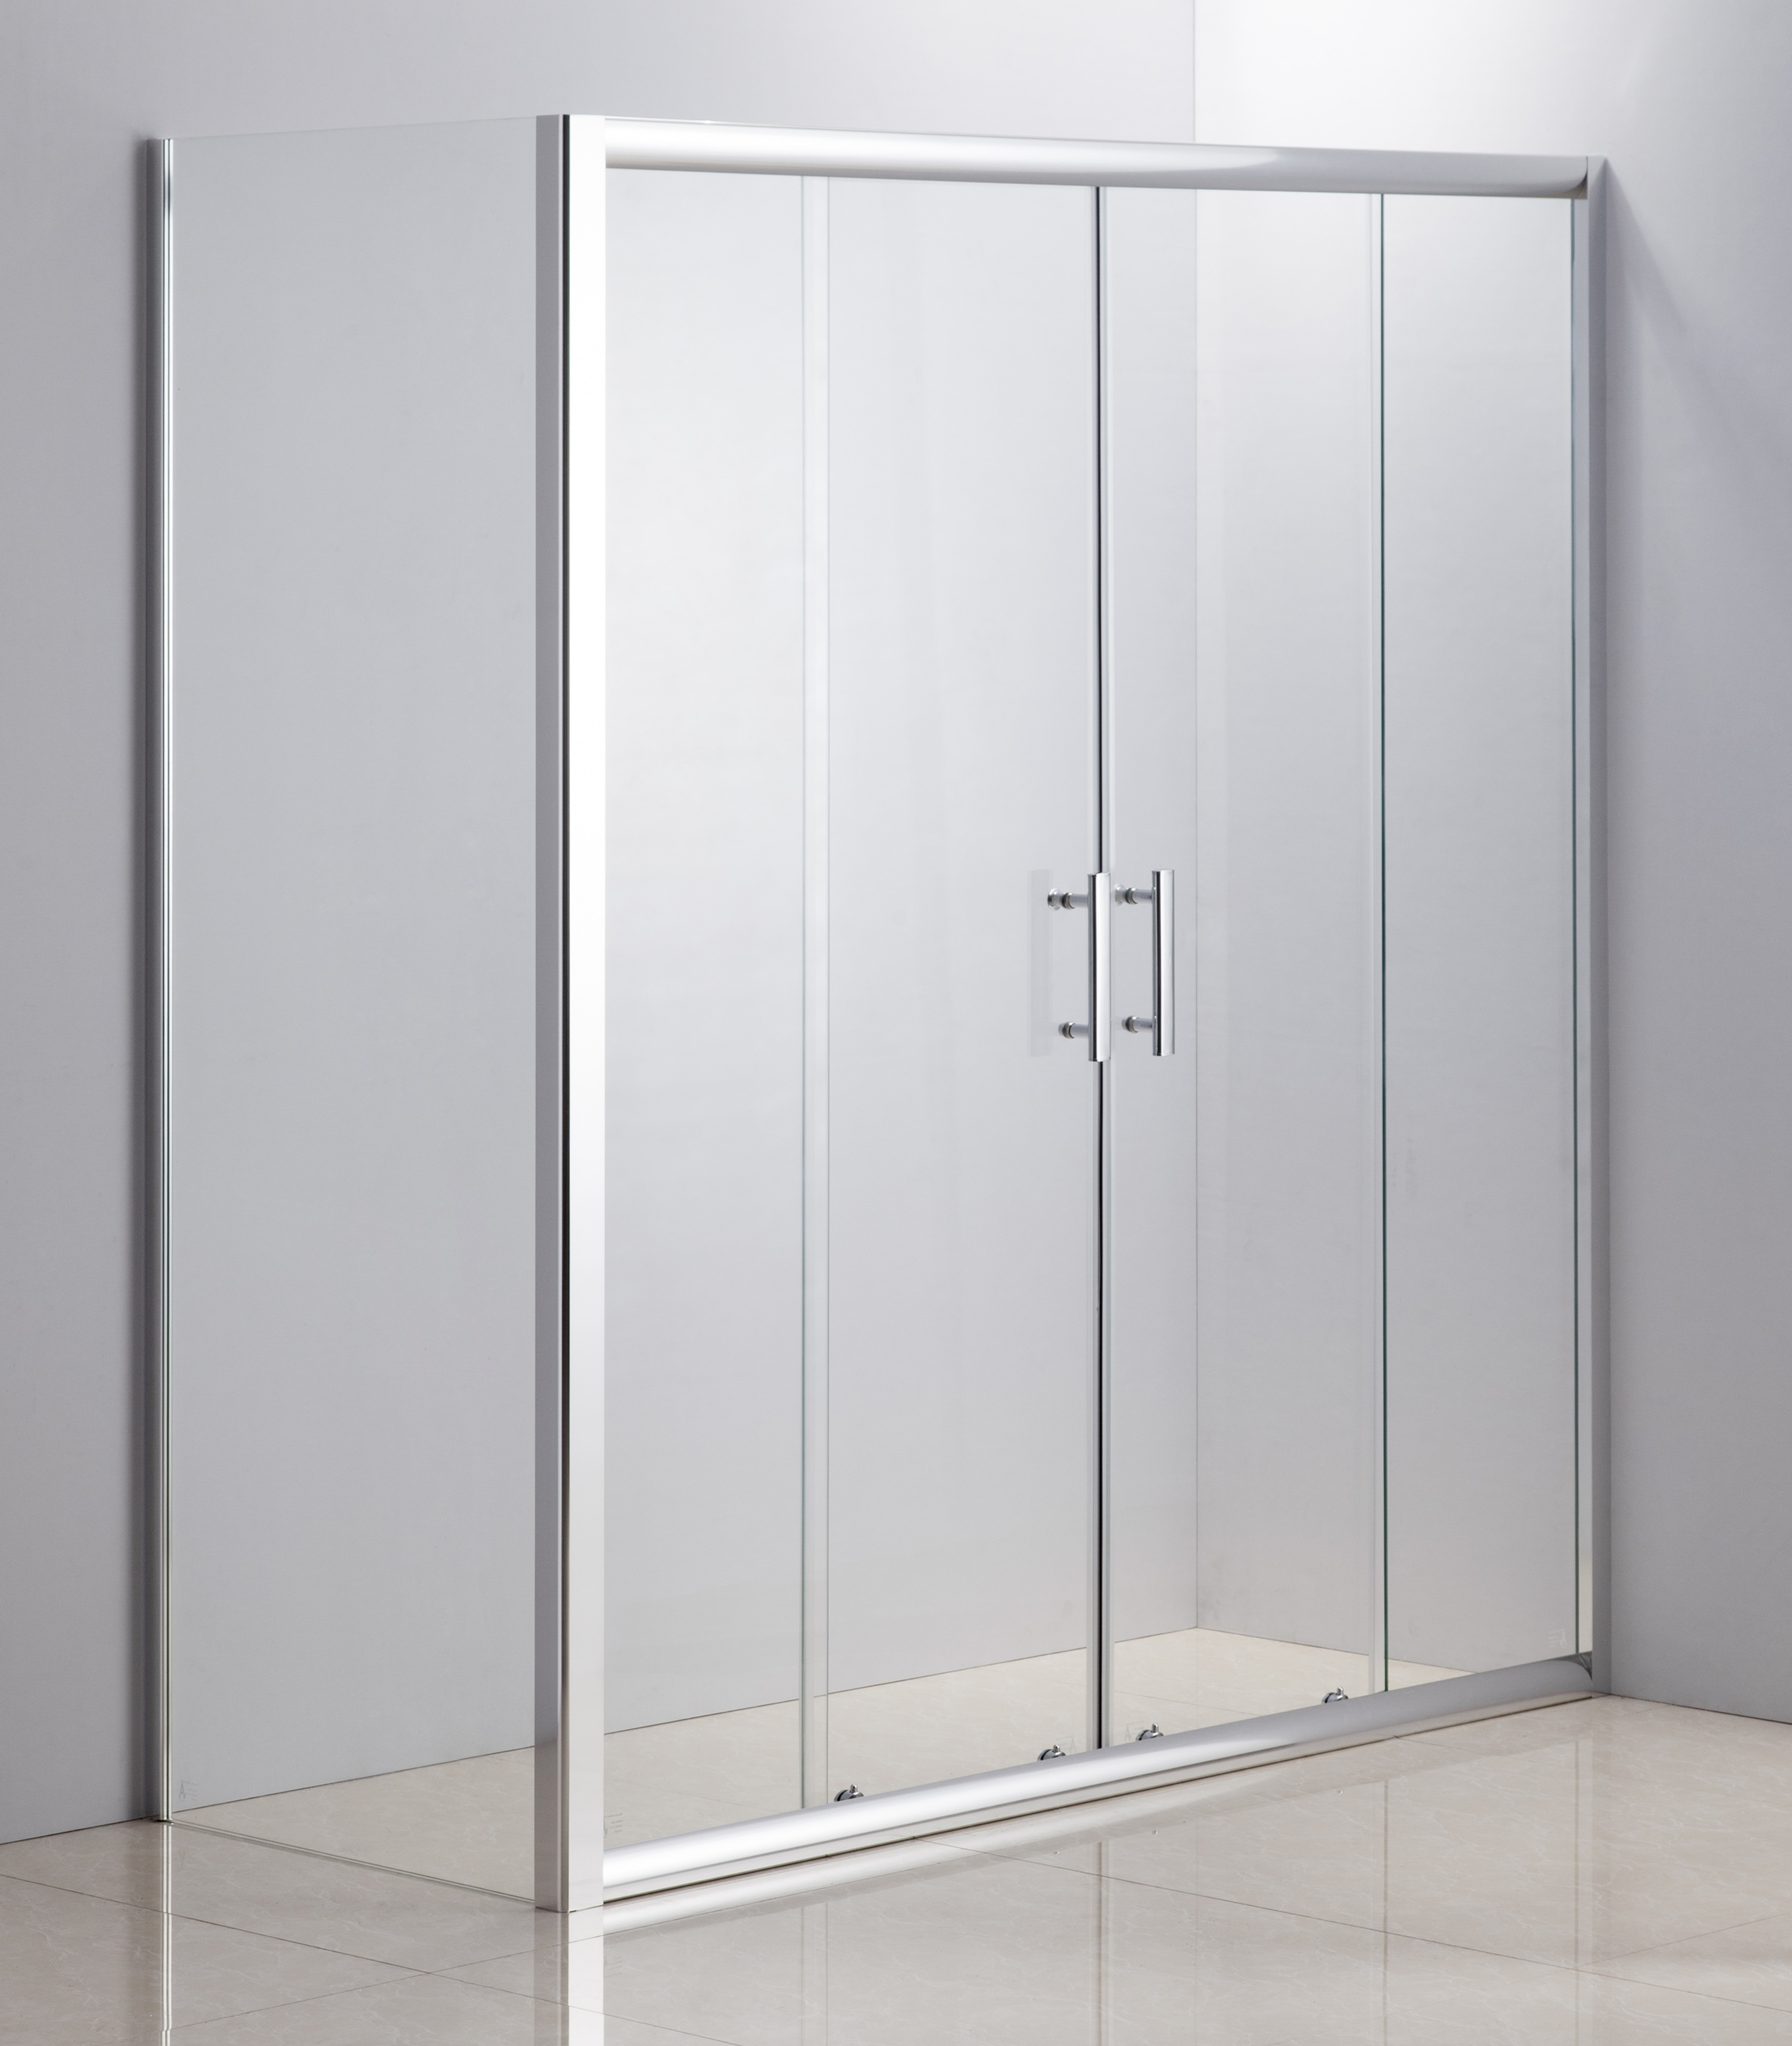 1700 X 700 Sliding Door Safety Glass Shower Screen By Della Francesca  Z2587